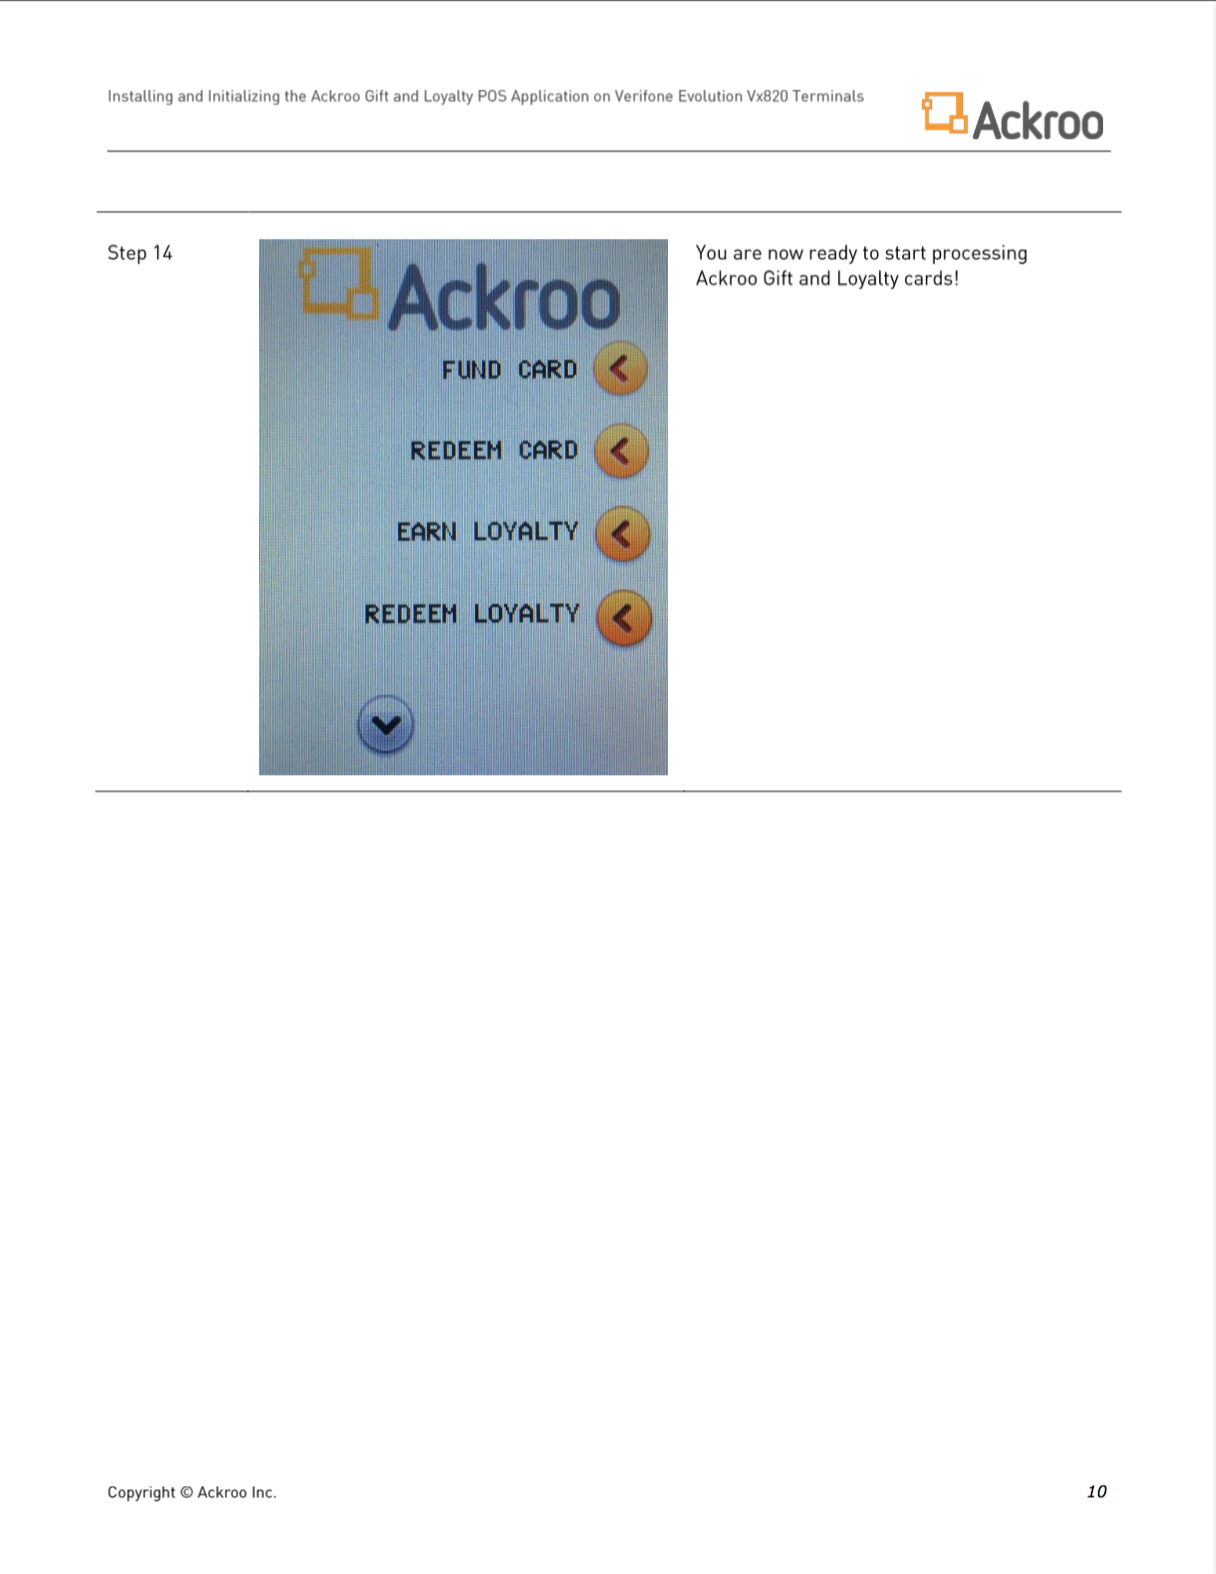 Verifone_Evolution_Vx820_Ackapp_installation_guide_-_Page_10.png